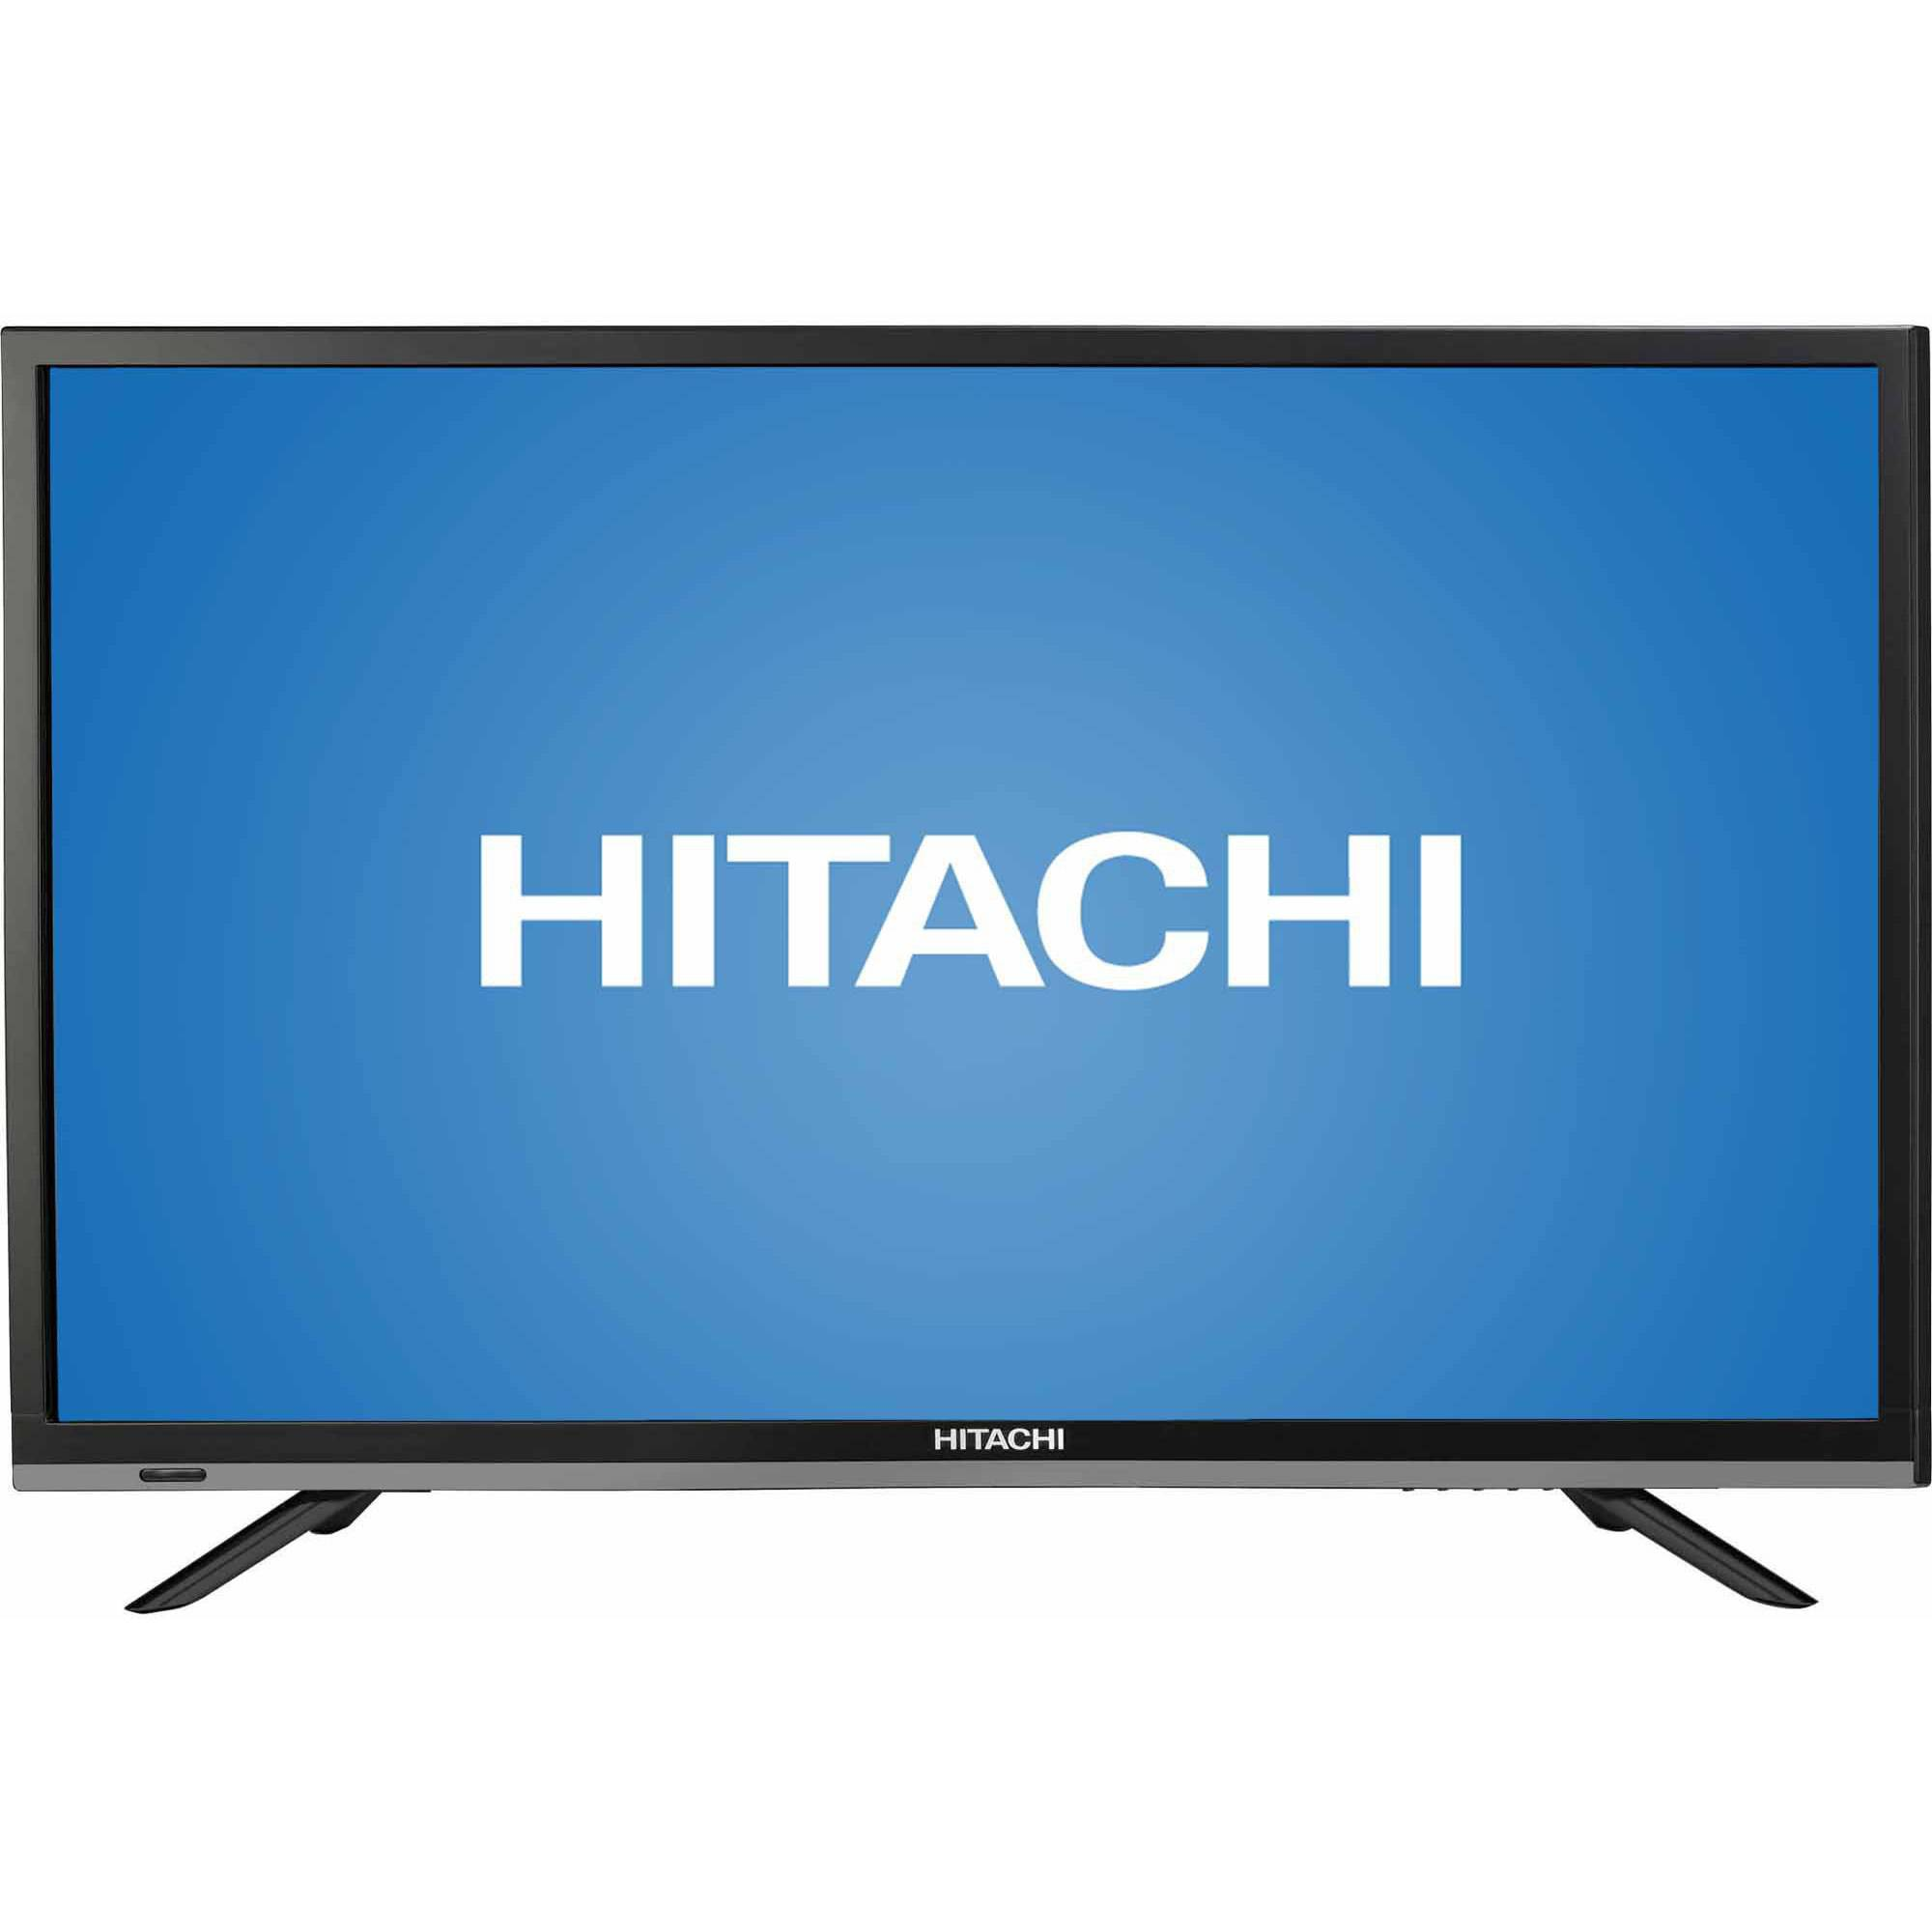 "Hitachi LE32A509 32"" 1080p 120Hz LED LCD HDTV"